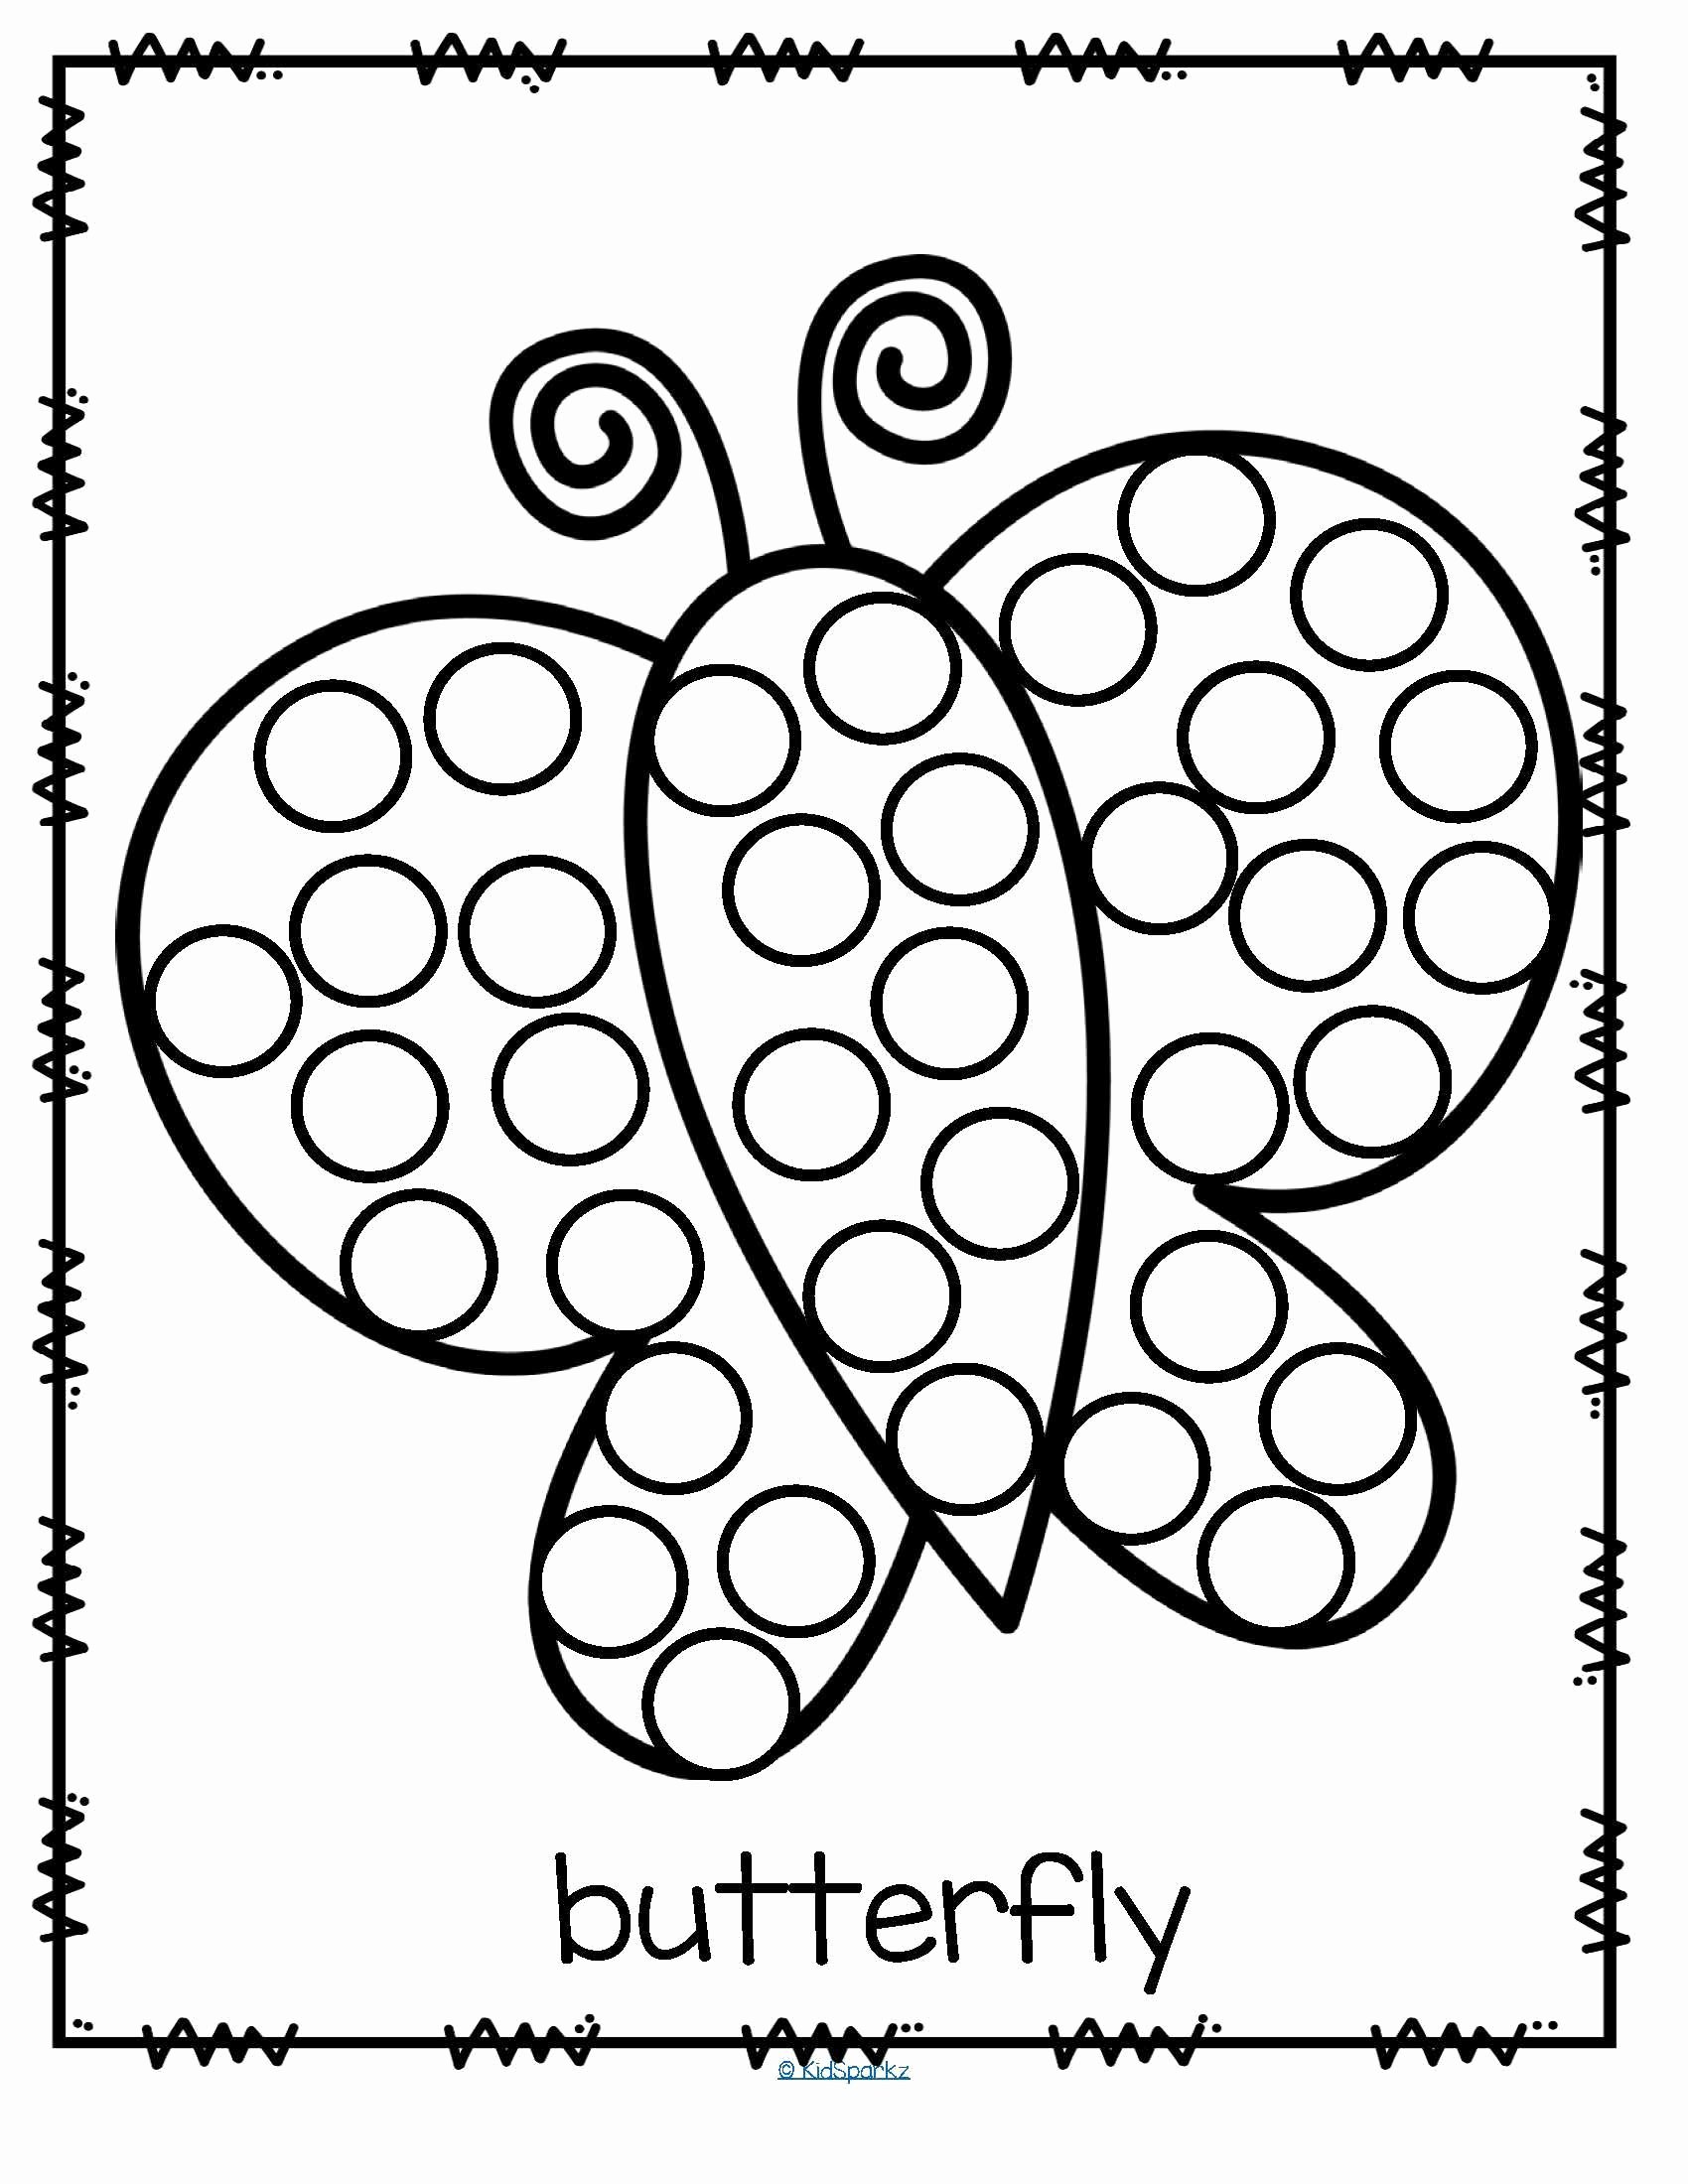 Dot to Dot Art Printables Fresh 26 Free Printable Dot Marker Templates butterfly Do A Dot